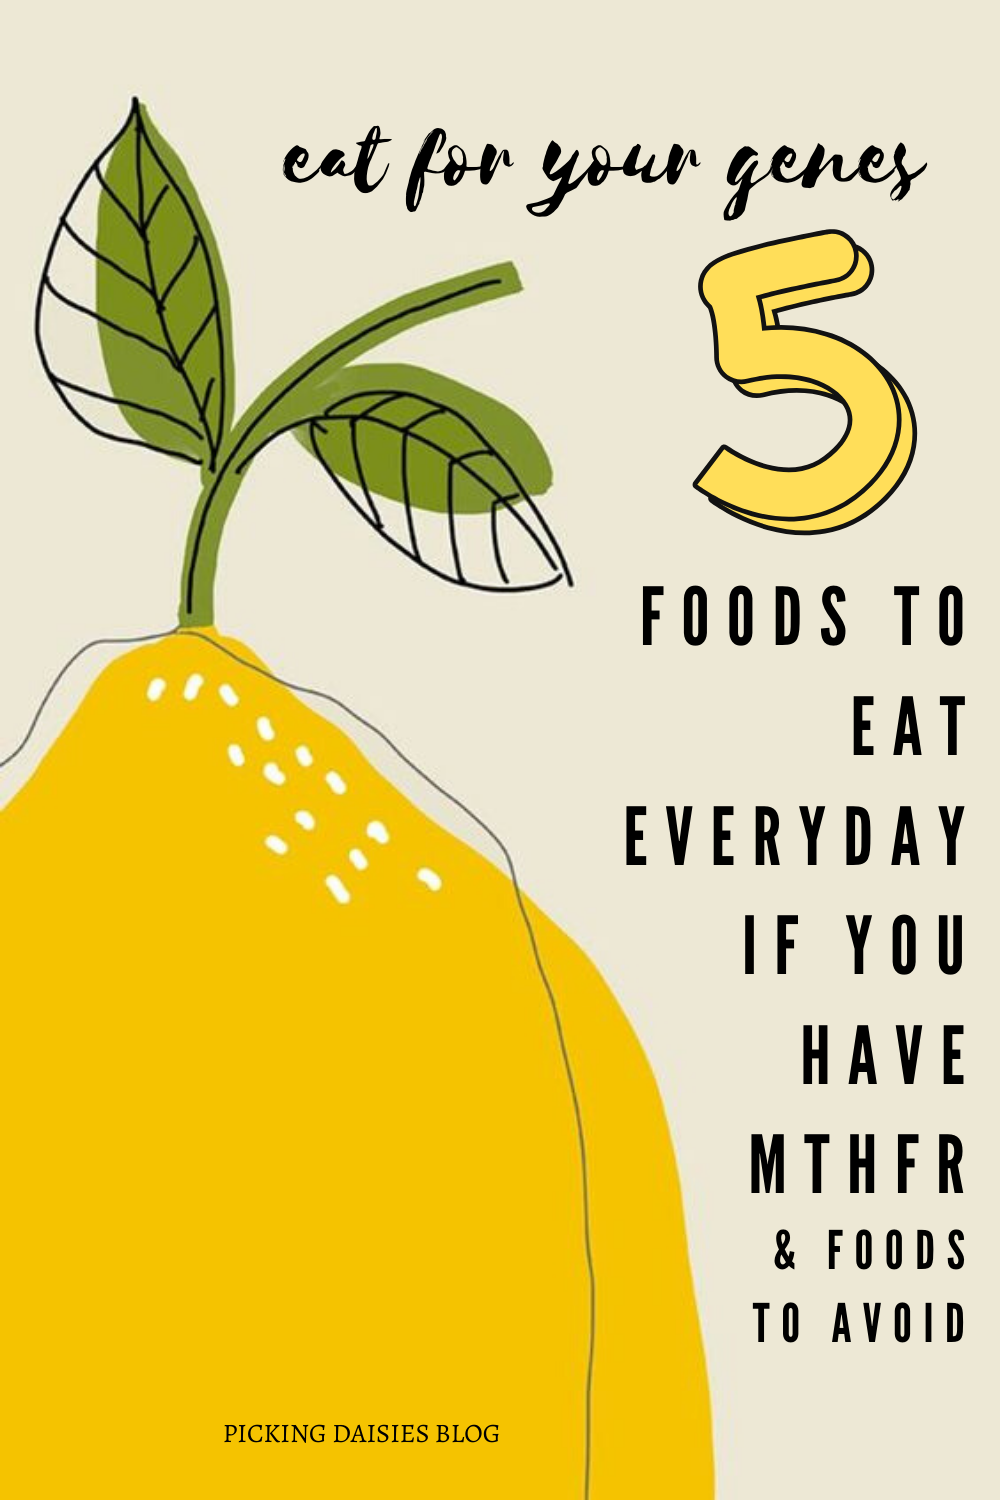 EAT FOR YOUR GENES-5 FOODS TO EAT EVERYDAY IF YOU HAVE MTHFR (& FOODS TO AVOID)